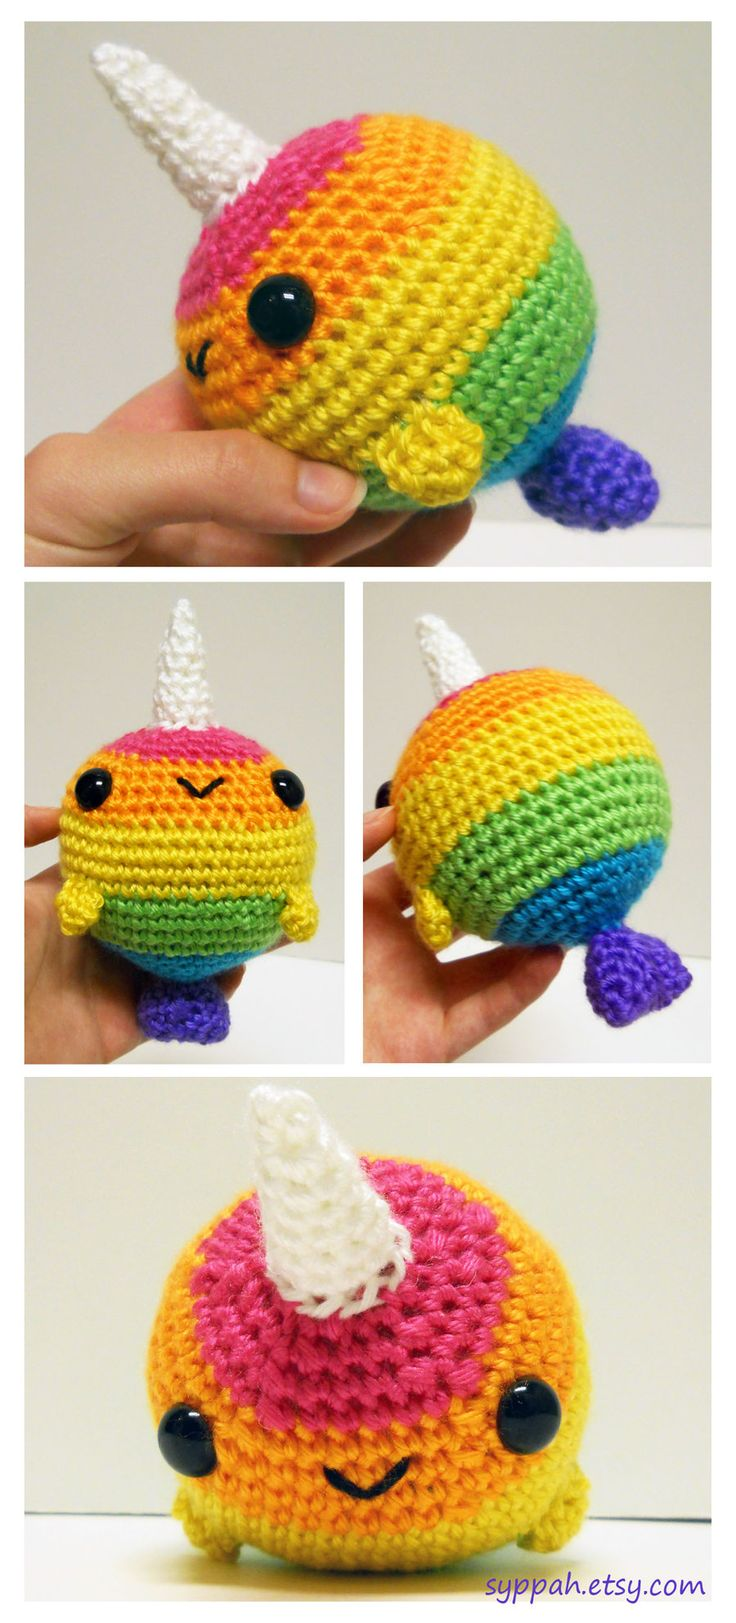 "Rainbow narwhal made me think we could do a ""special"" label of a rainbow bee for pride/shops inside the gay village? Not only would we be more likely to sell more, it also promotes the cathedral as open-minded & friendly etc etc. Plus eighth day cafe (veggie shop) is pro-lgbt too.. something to think about..."